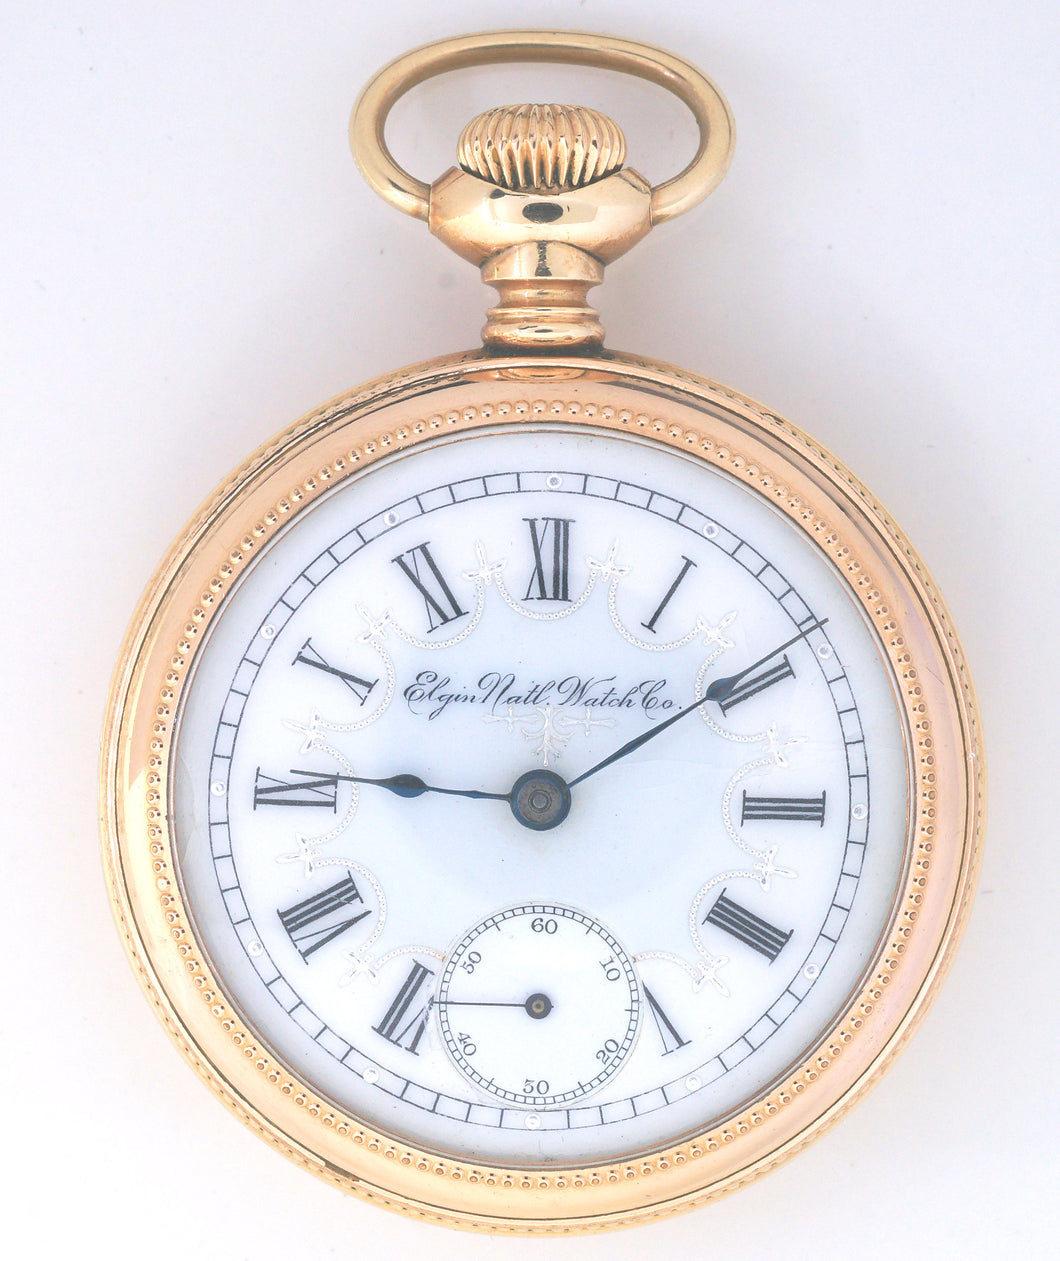 1895 Elgin G.M. Wheeler 44 Pocket Watch